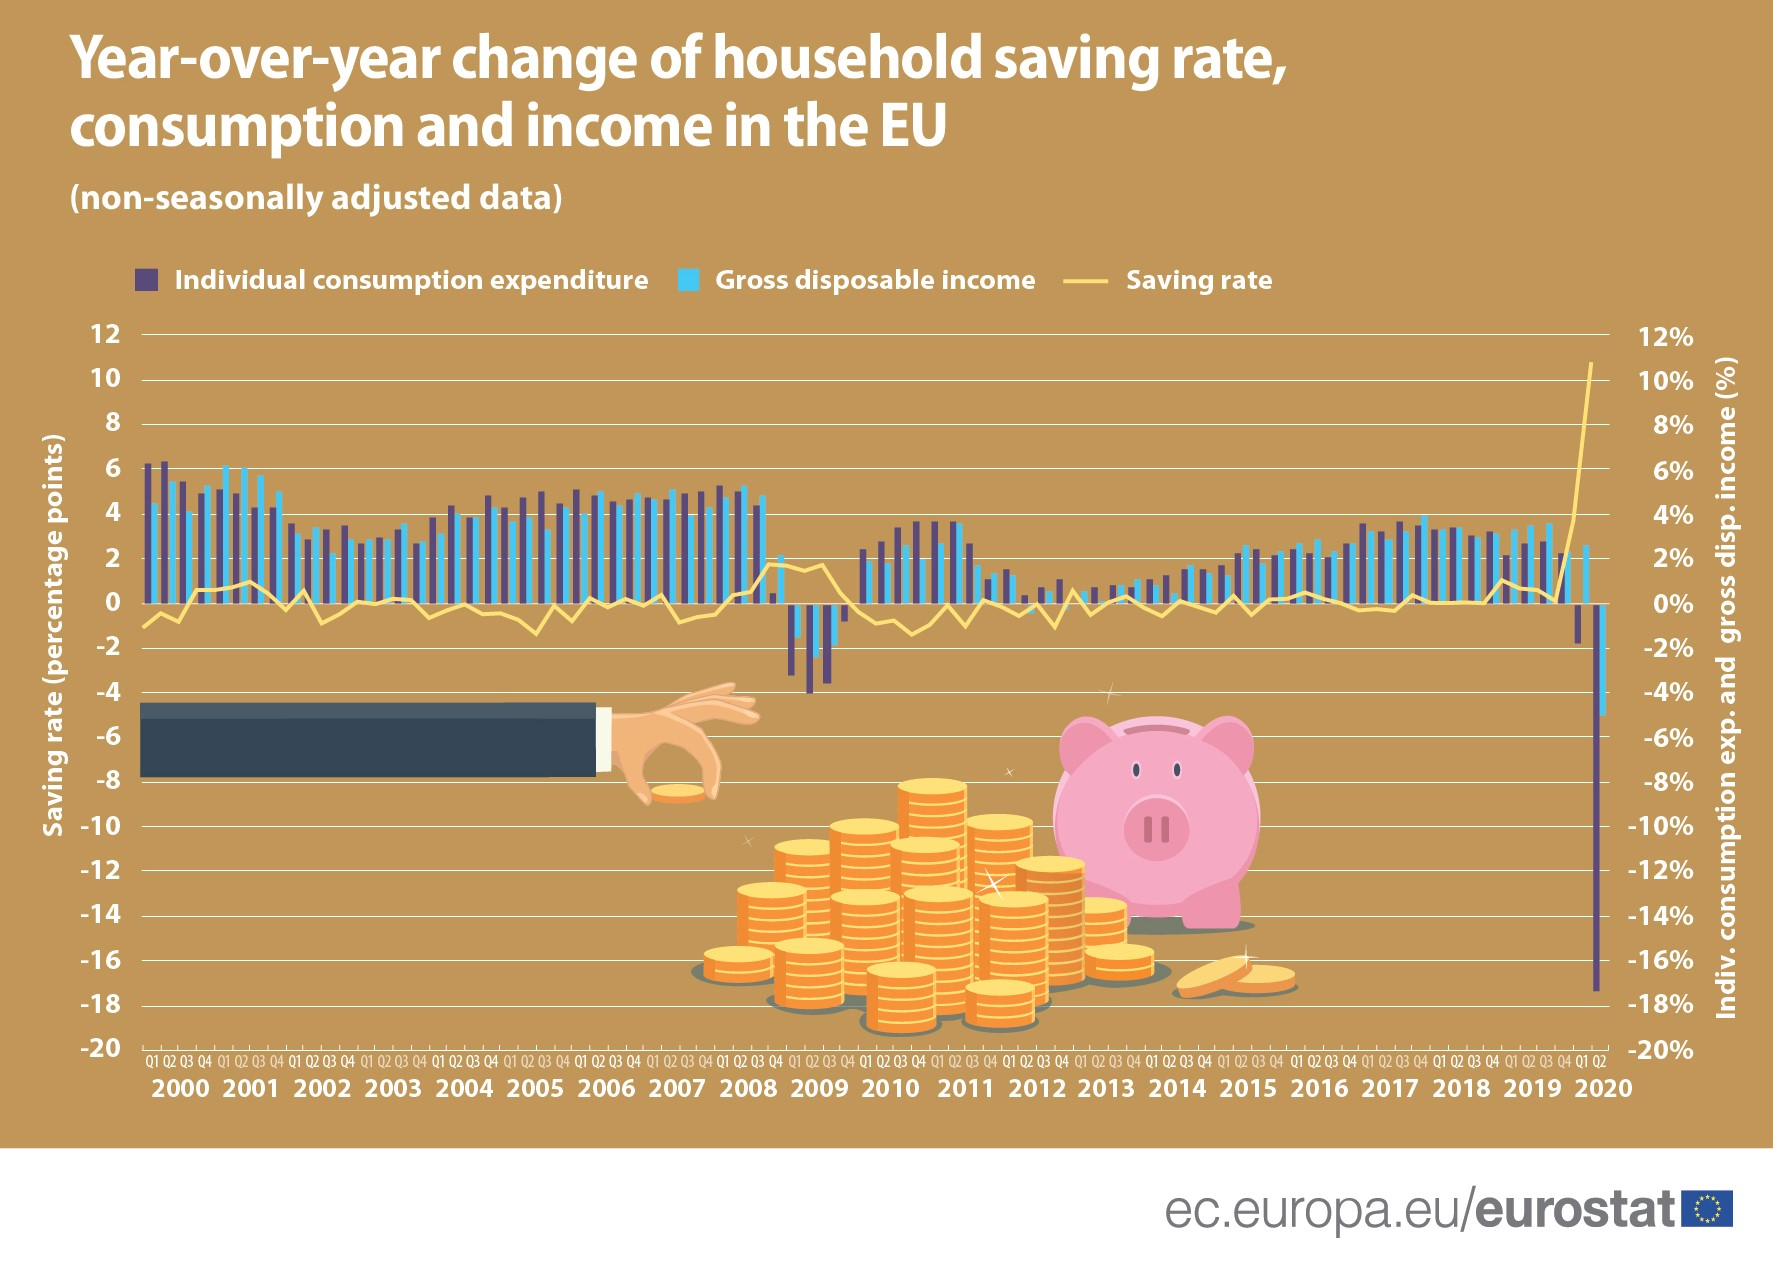 Year-over year change of household saving rate, consumption and income